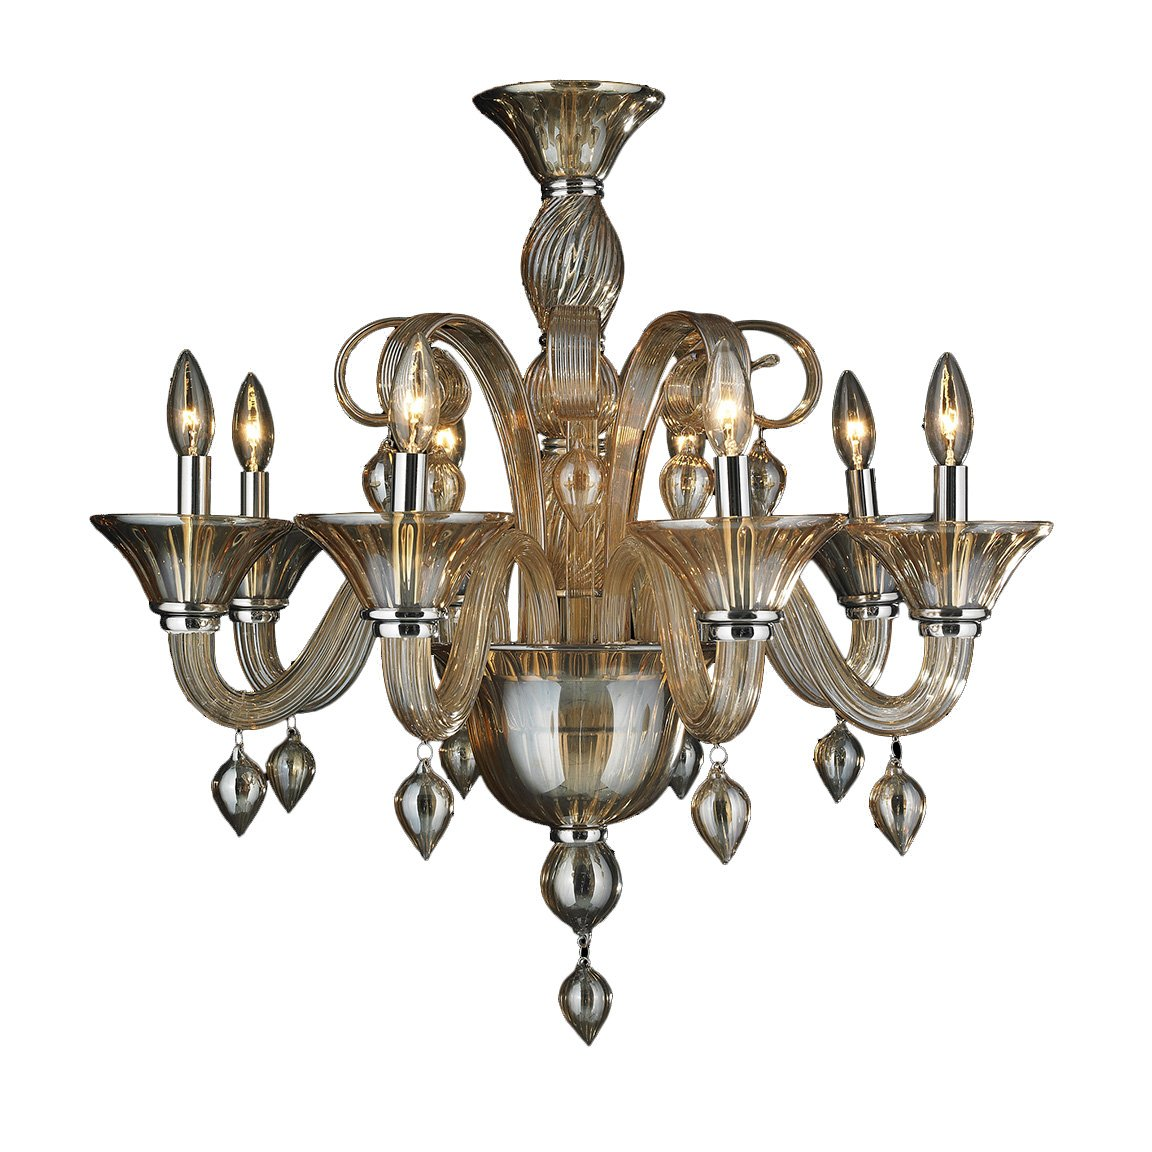 Worldwide Lighting Murano Collection 8 Light Blown Glass in Amber Finish Venetian Style Chandelier 27'' D x 27'' H Large